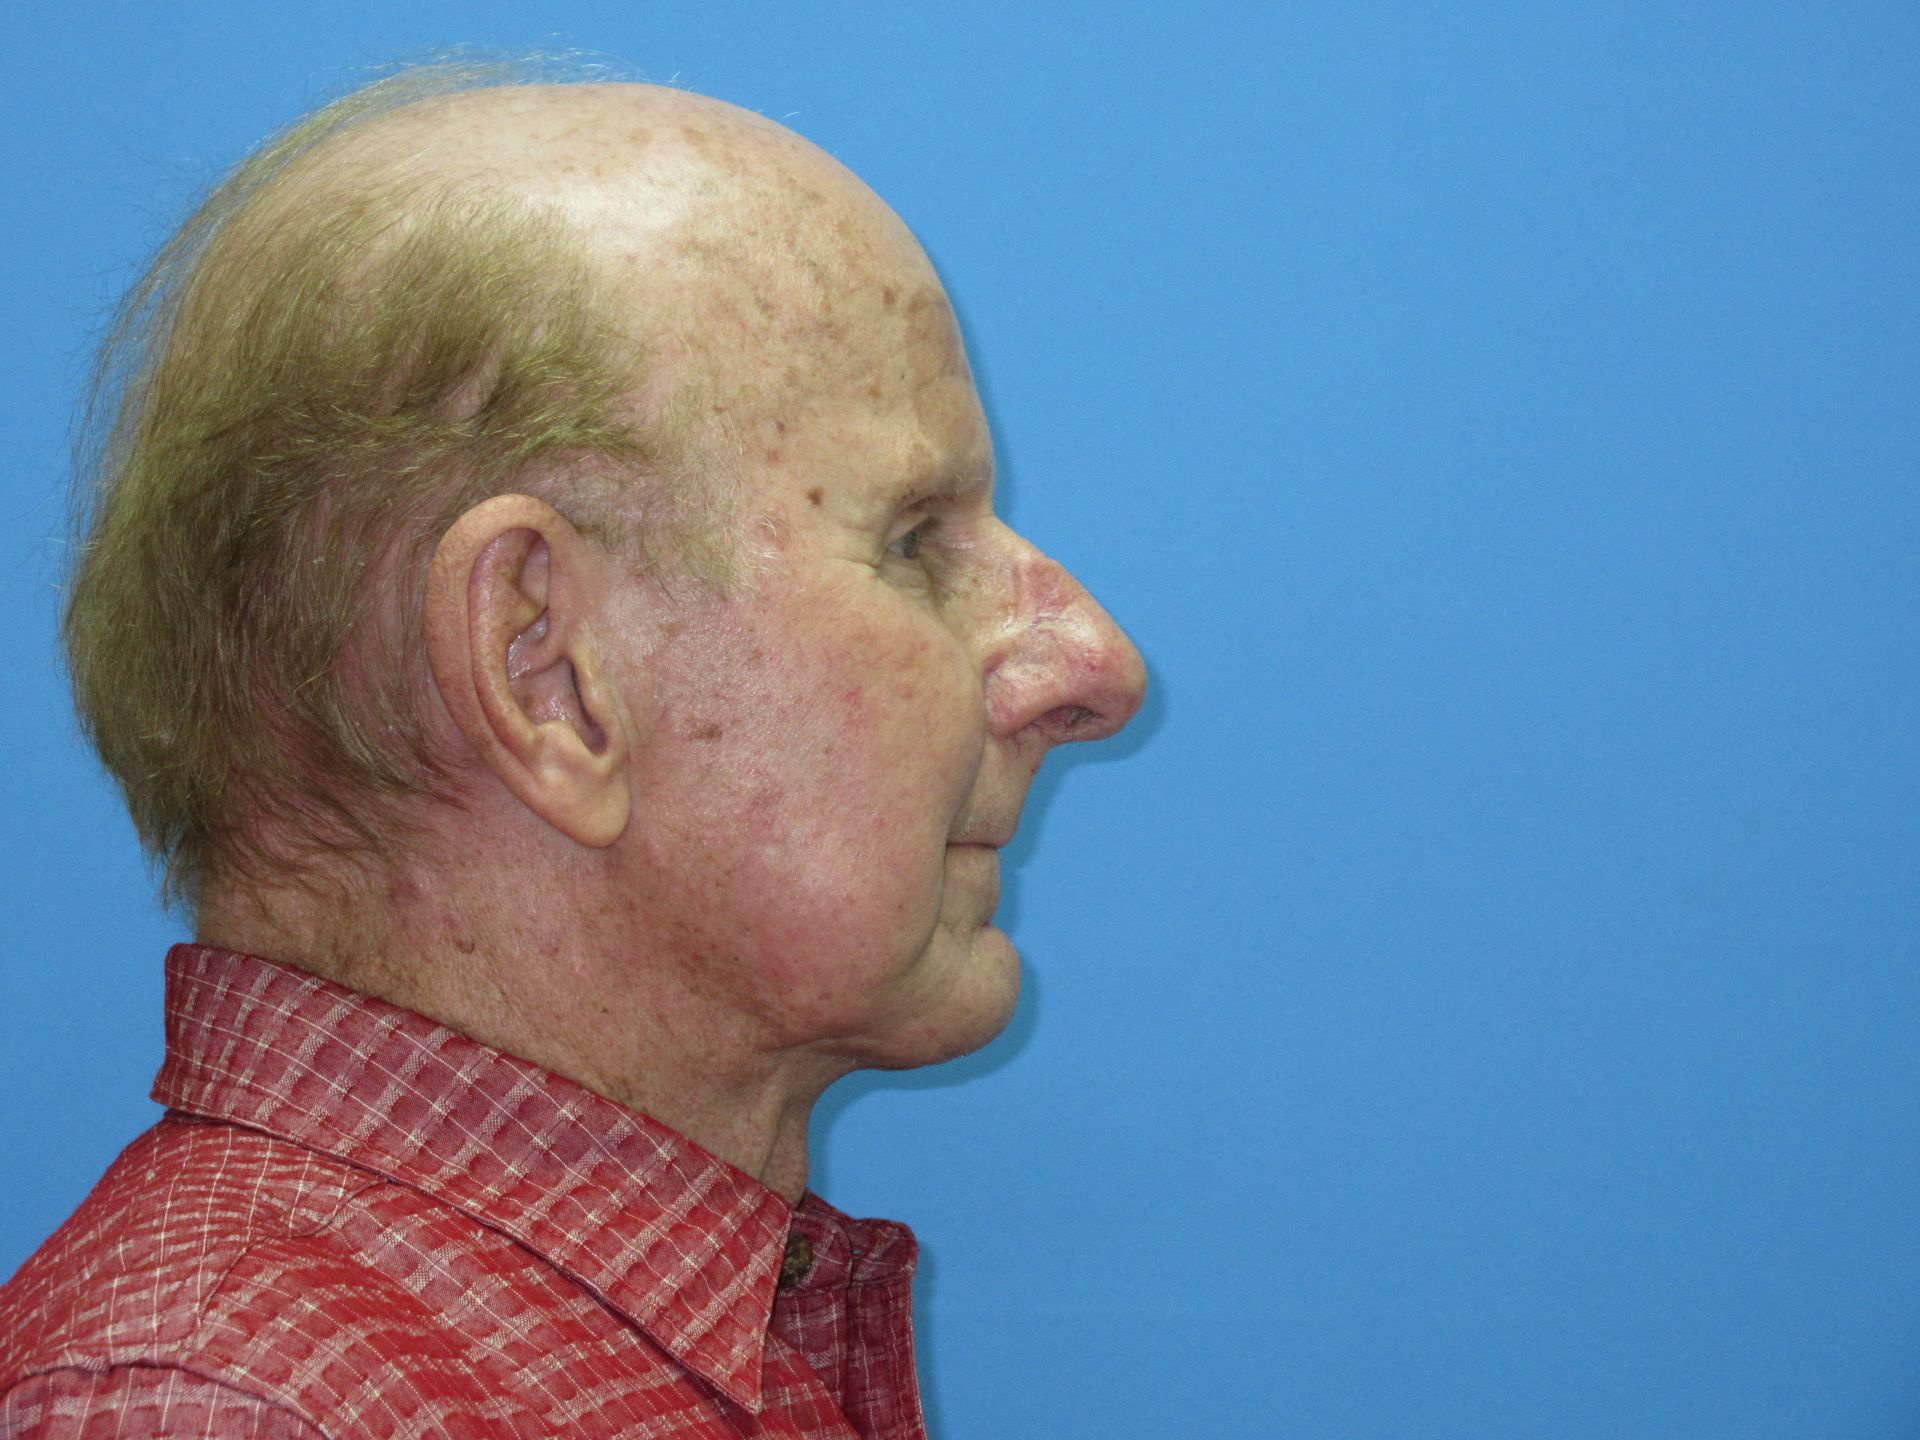 Neck Lift Chin Implant Case 5 16 18 Right After